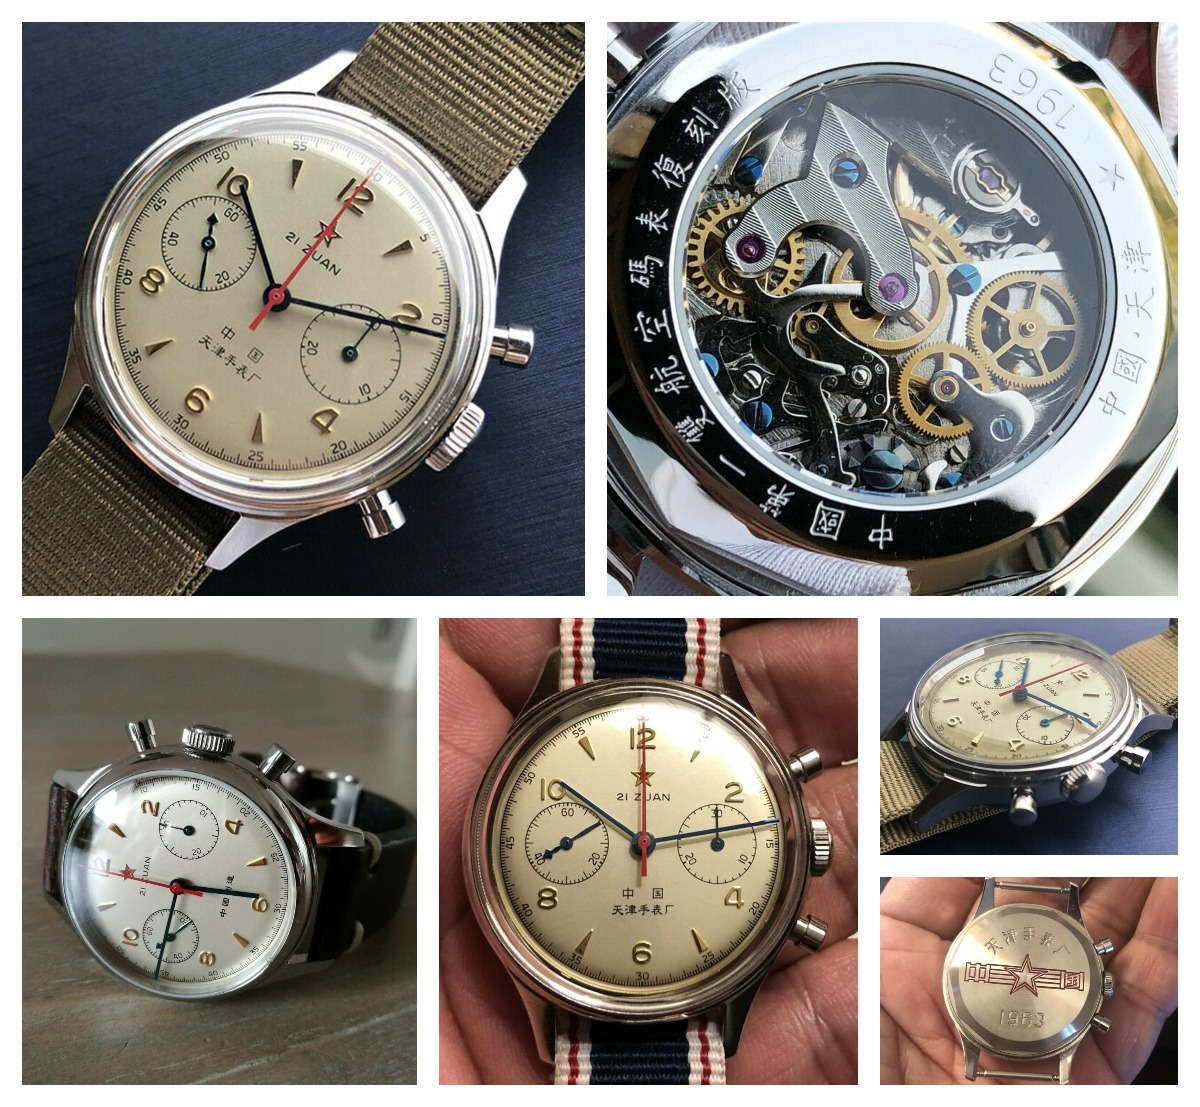 The Seagull 1963 manual wind chronograph. Available now on eBay.